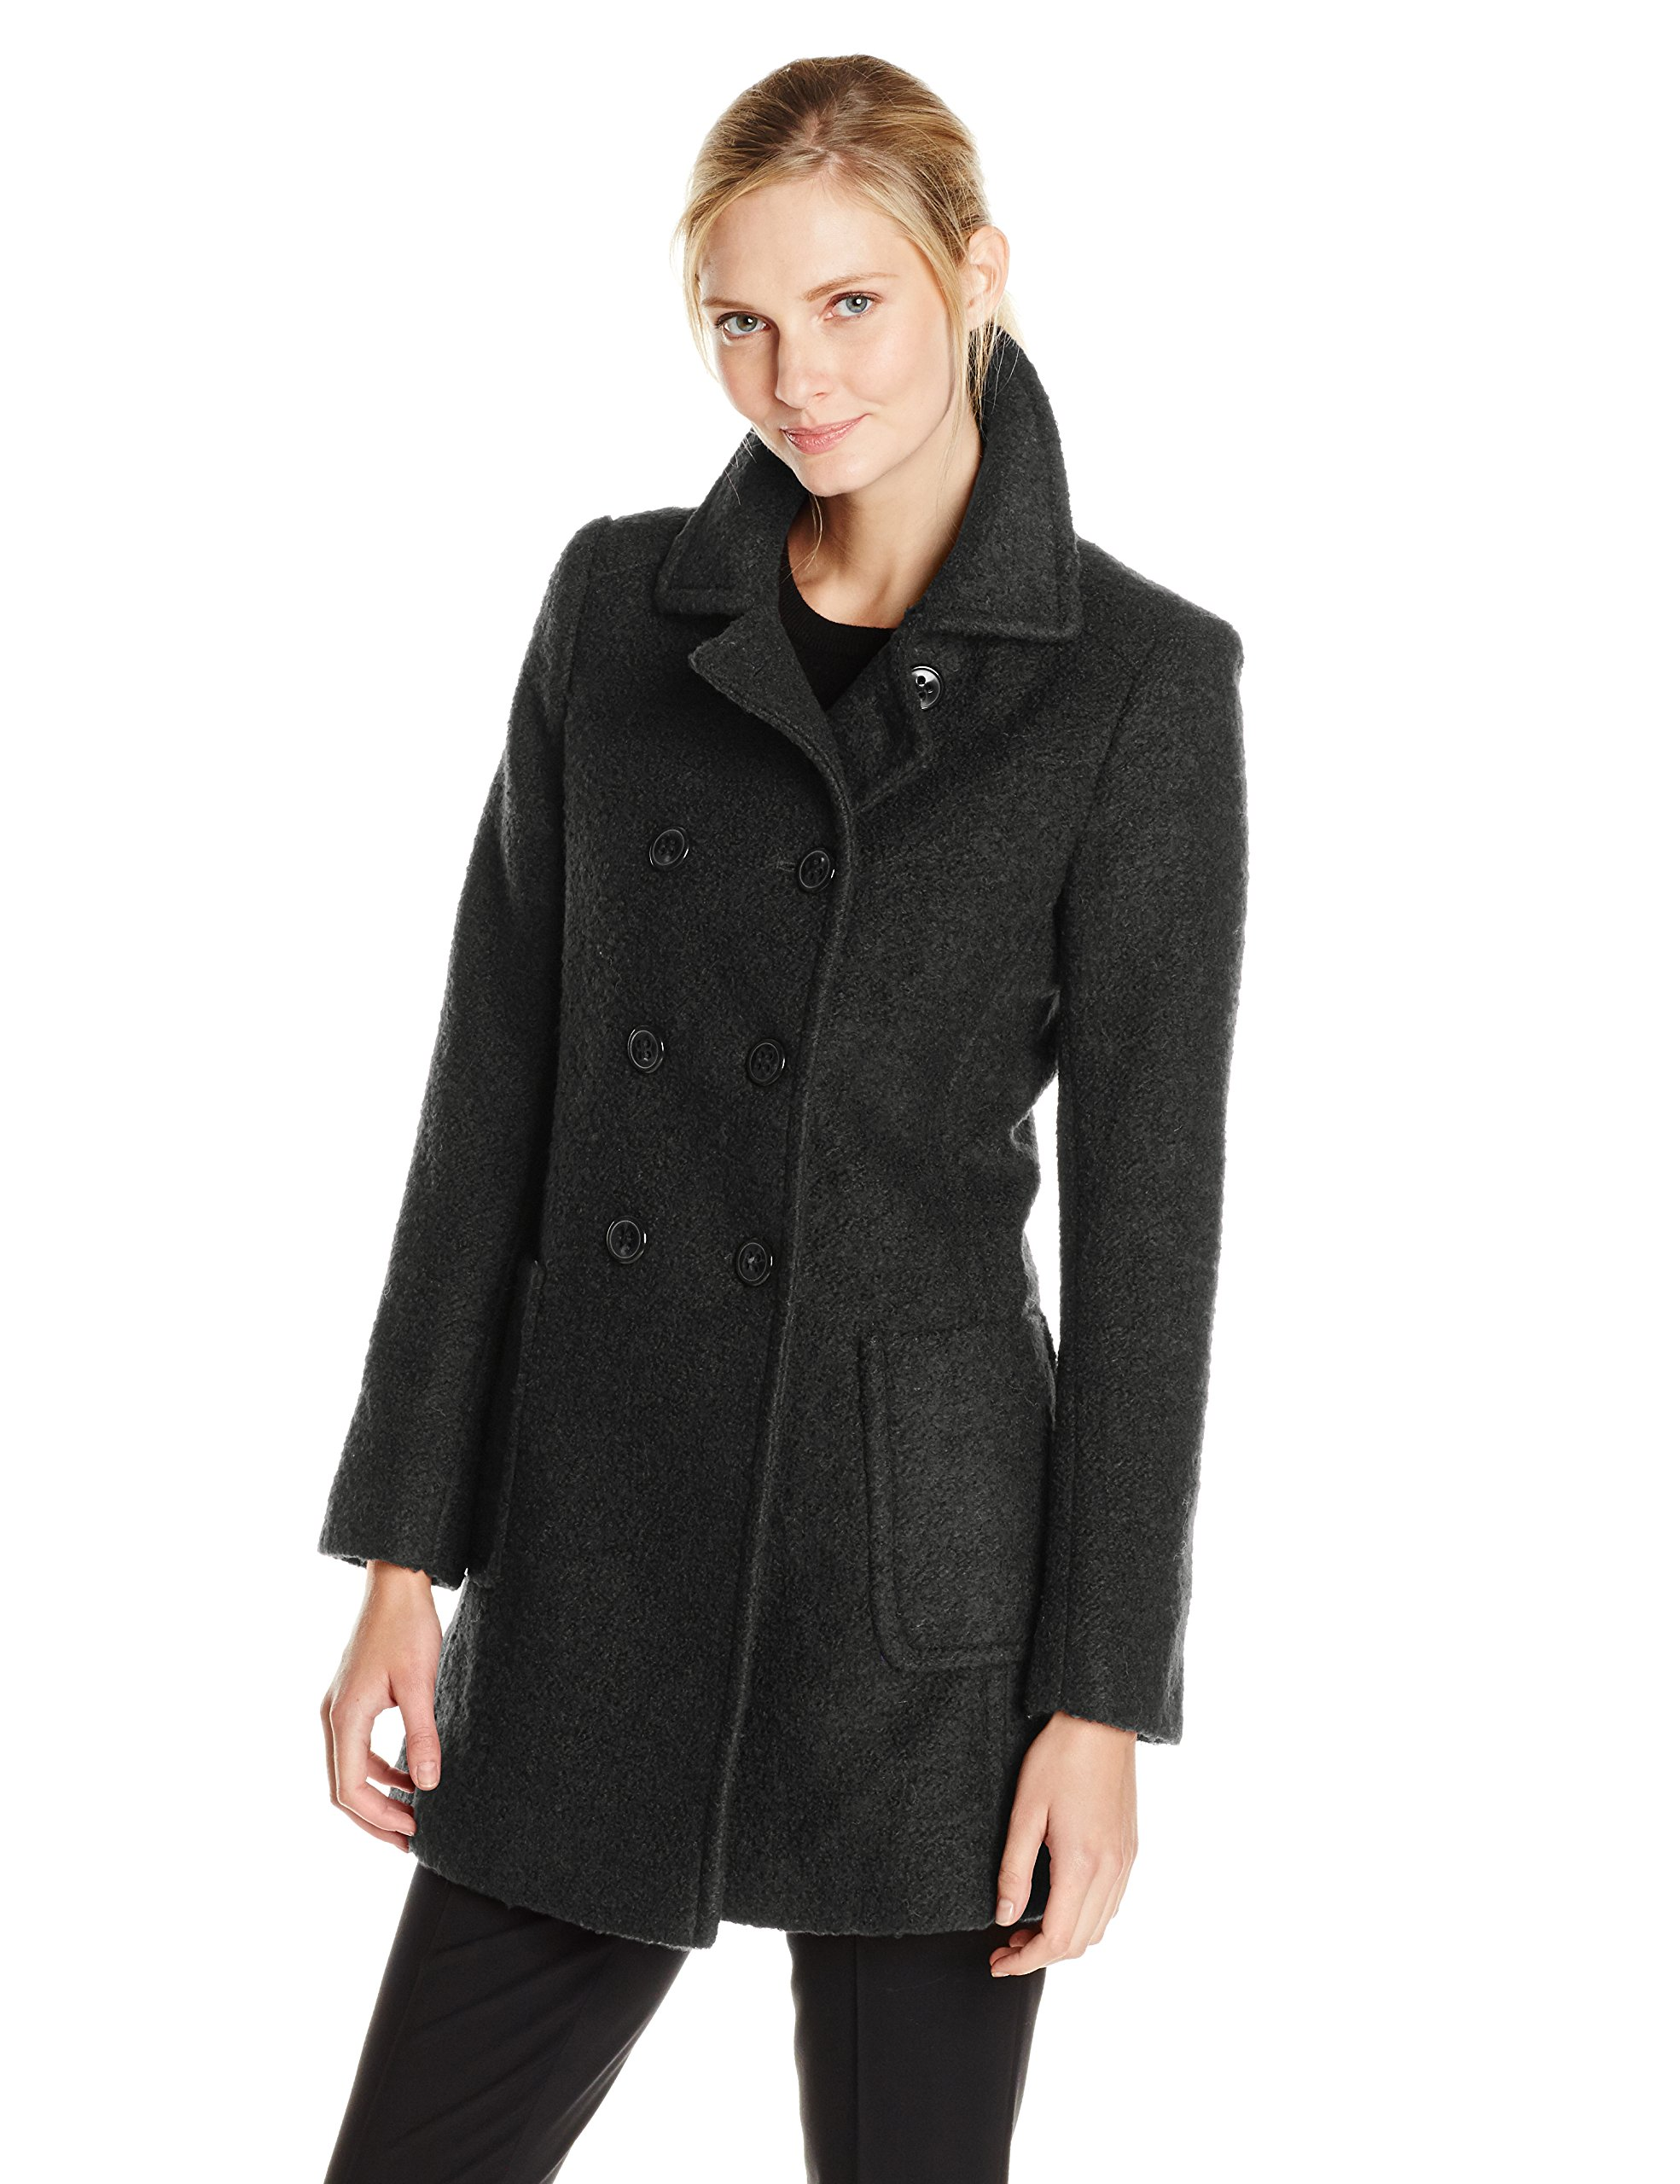 T Tahari Women's Double Breasted Wool Boucle Coat, Black, Small